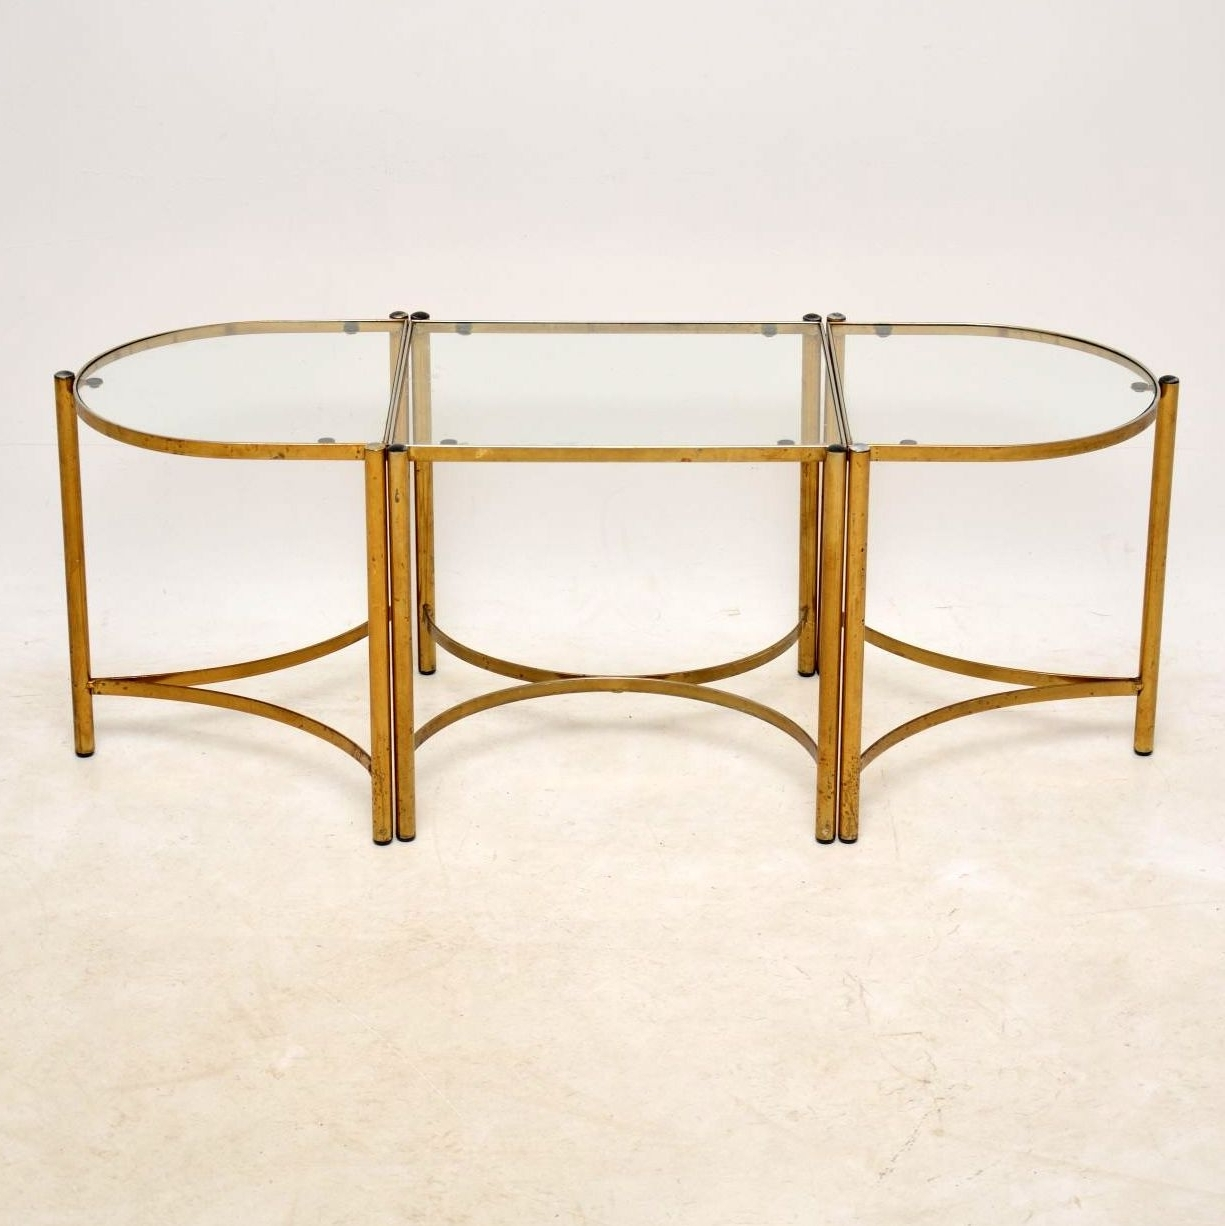 Retrospective Pertaining To Most Recently Released Antique Brass Coffee Tables (View 18 of 20)